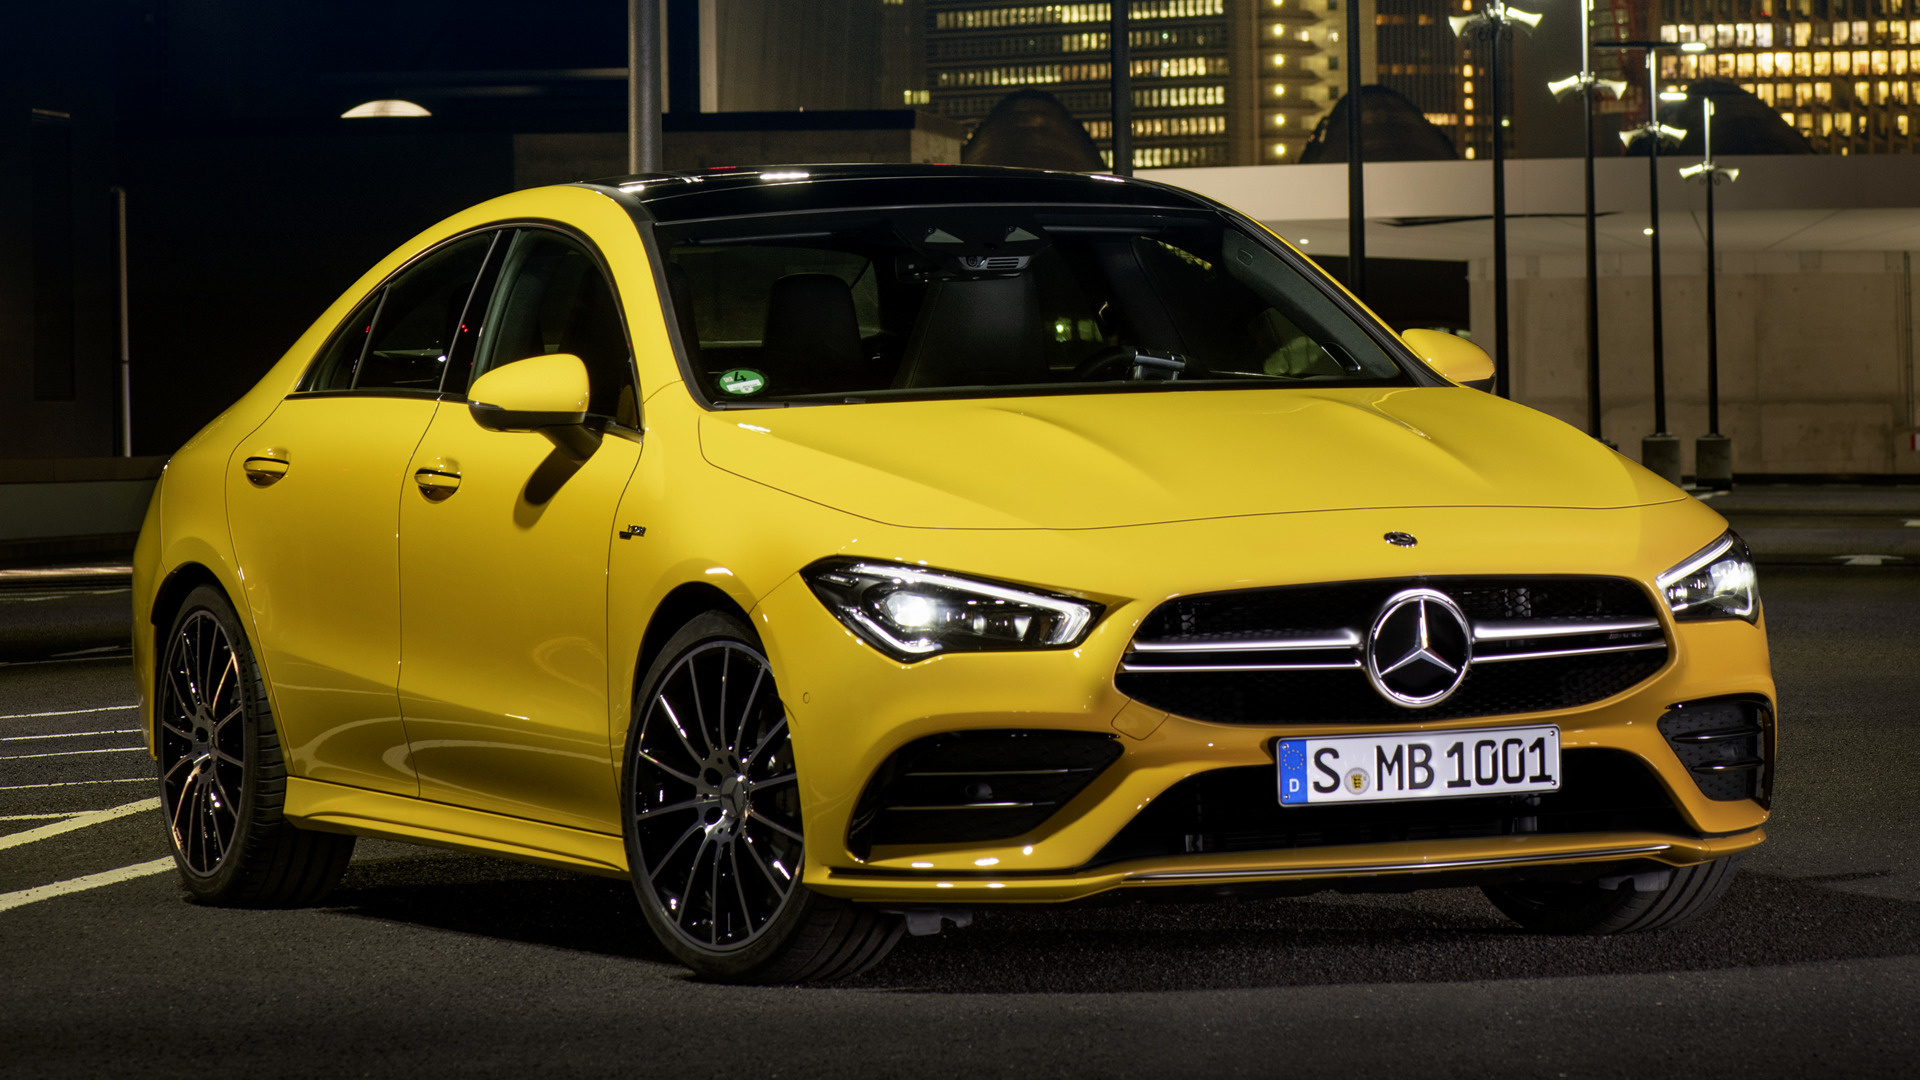 Mercedes Benz Cla 250 >> 2019 Mercedes-AMG CLA 35 - Wallpapers and HD Images | Car ...